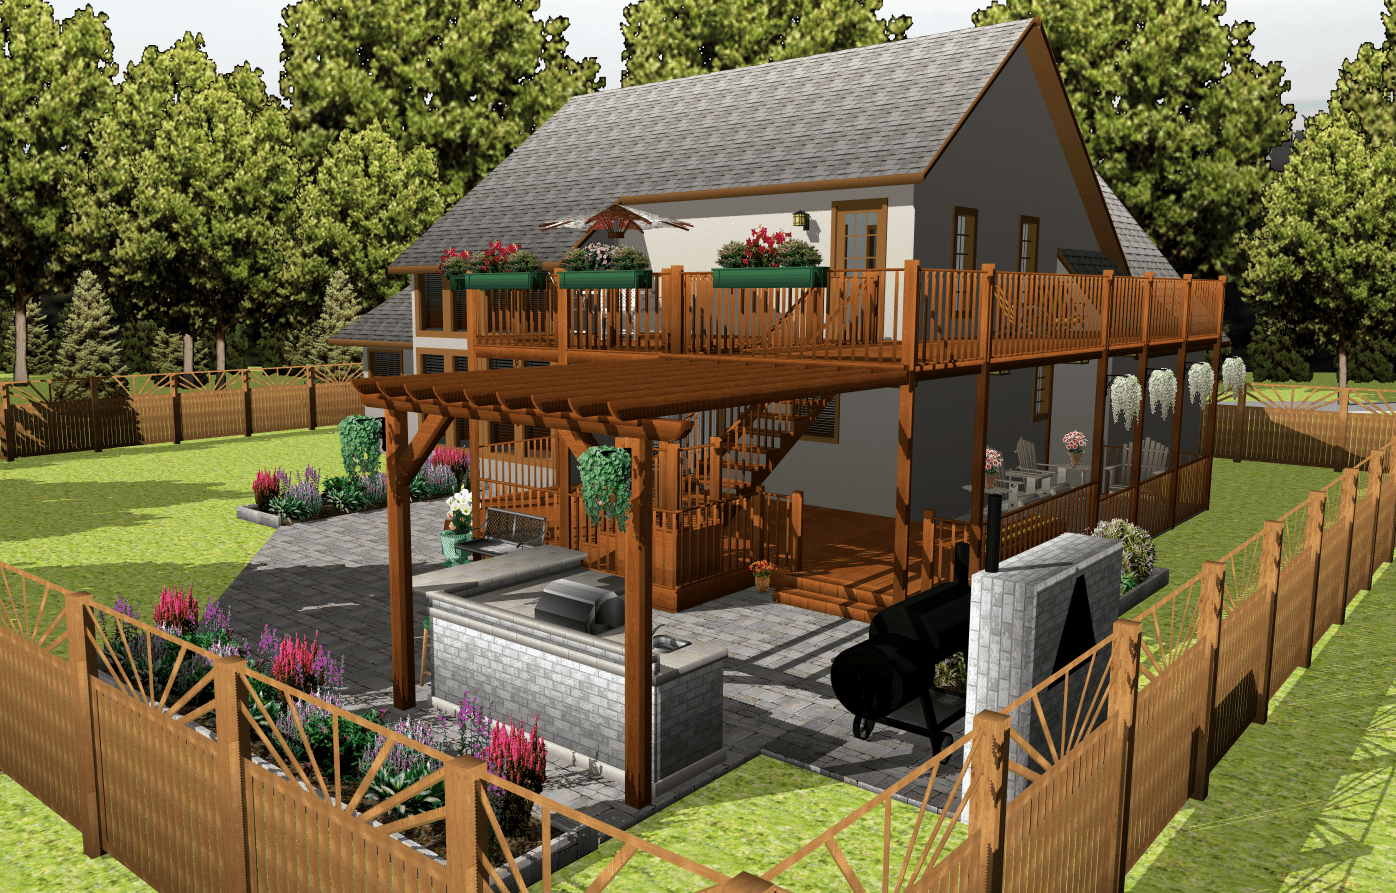 Home design software 12CADcom